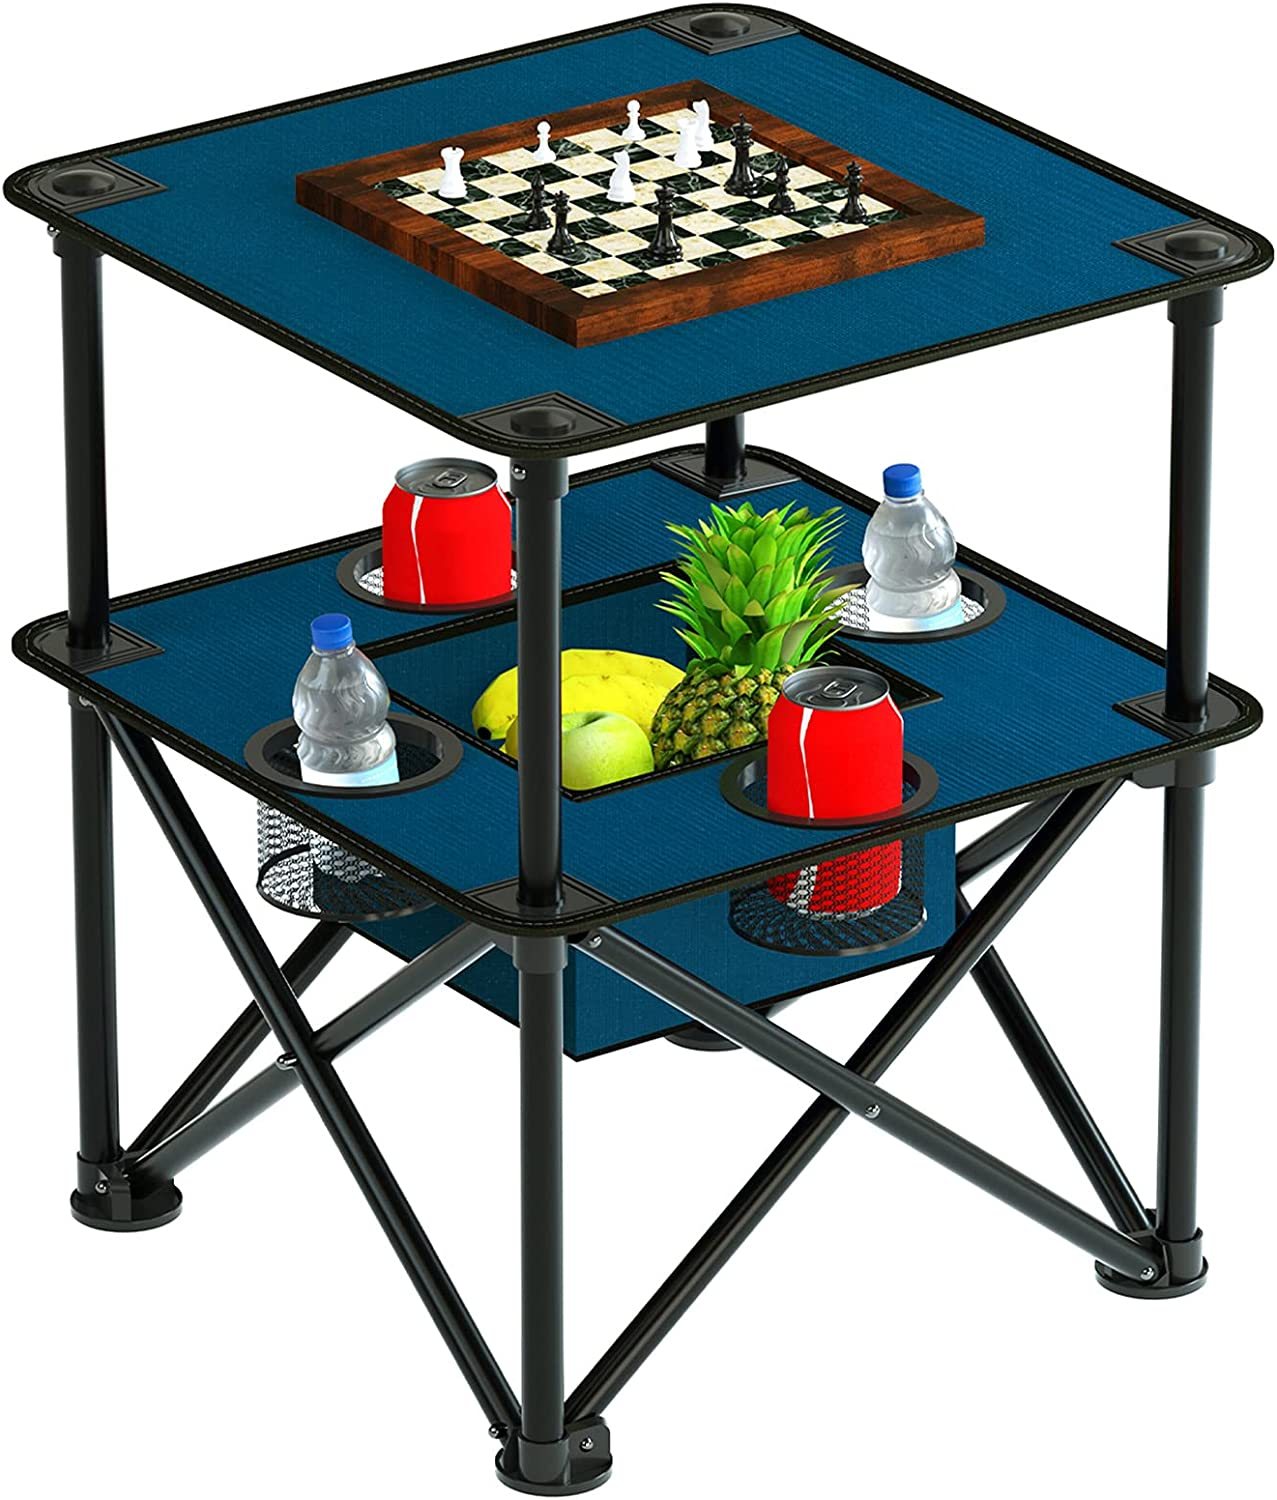 Folding Camping Table Portable Outdoor Camp Side Table Lightweight Square Picnic Table with Built-in 4 Cup Holders and Food Basket and Travel Bag for Barbeque Picnic Camping and Tailgate Blue